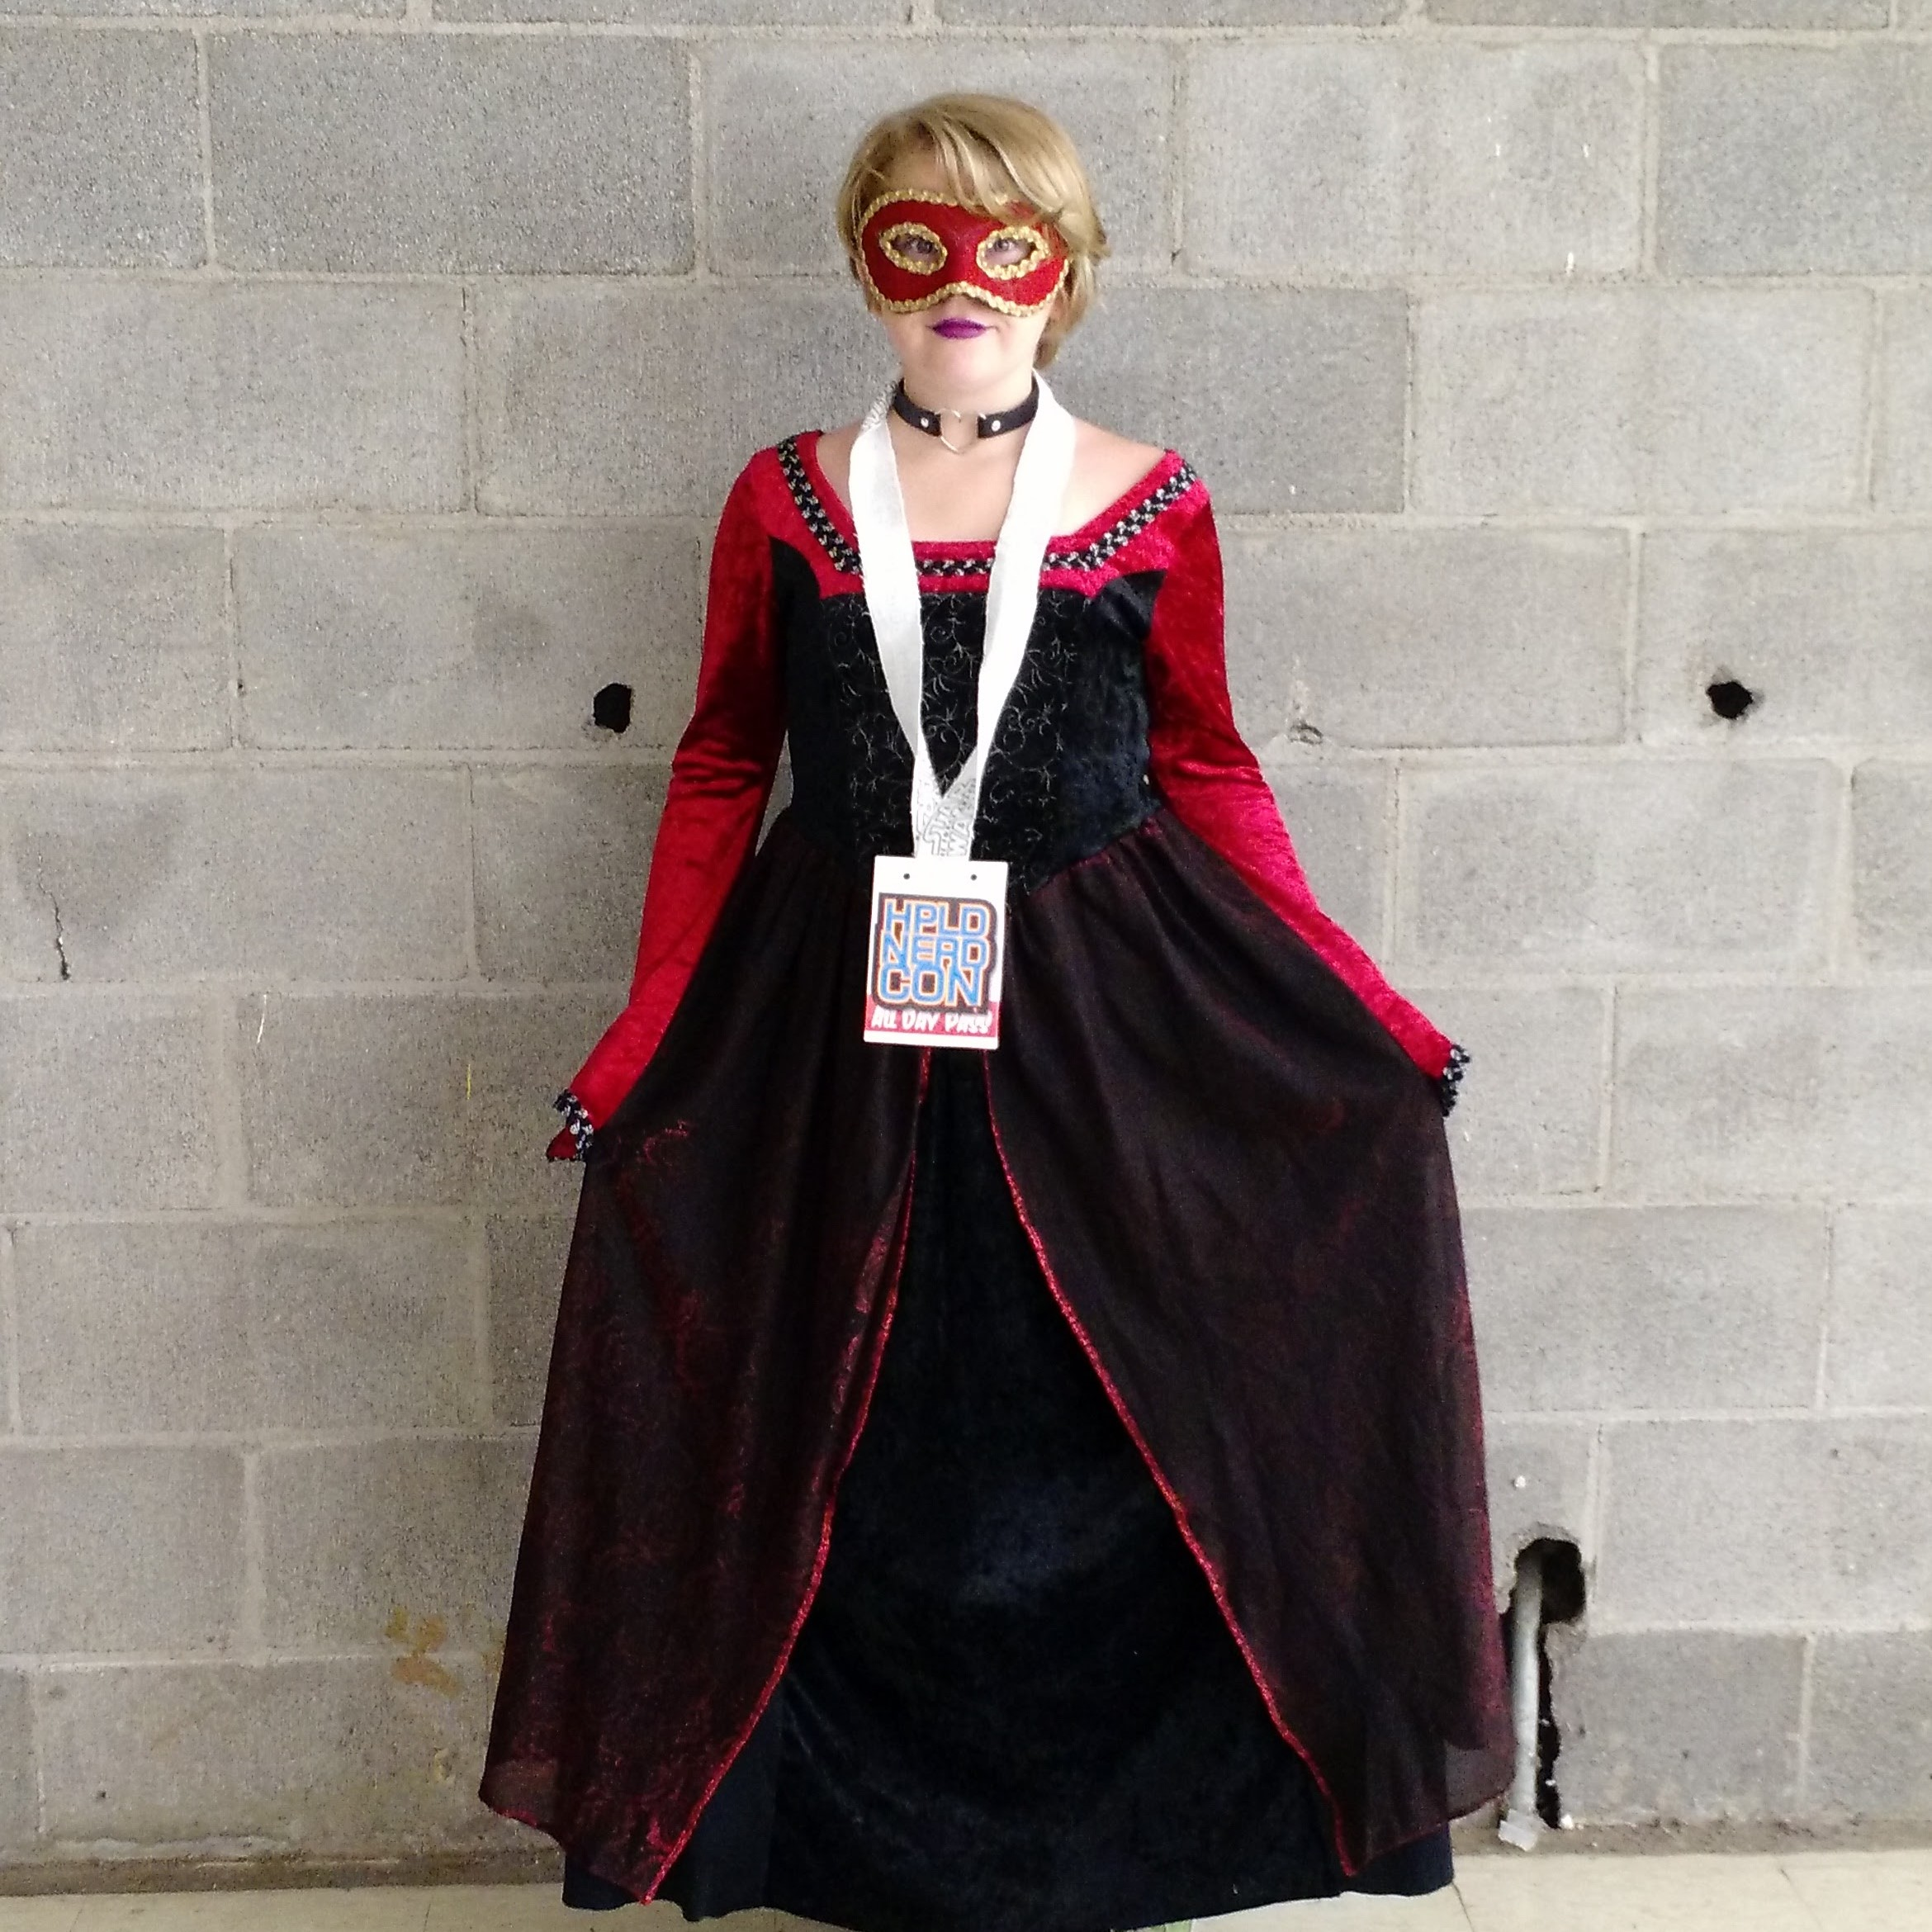 A cosplayer at the con.